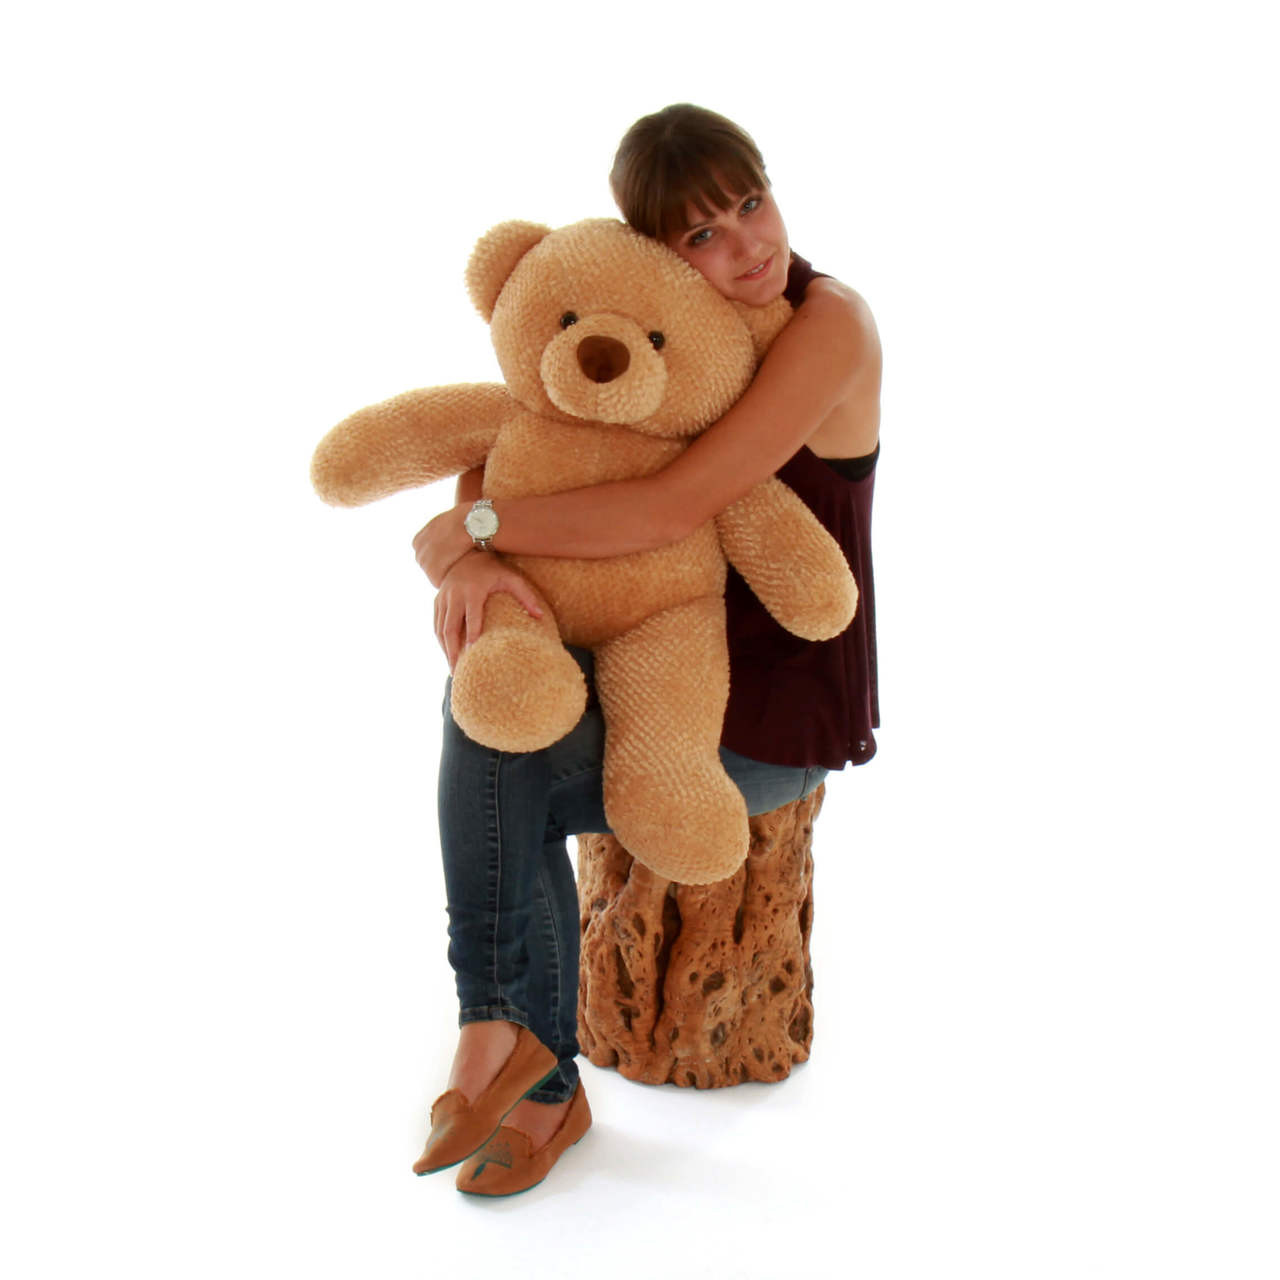 Cutie Chubs Extra Plump and Adorable Amber Teddy Bear 30in